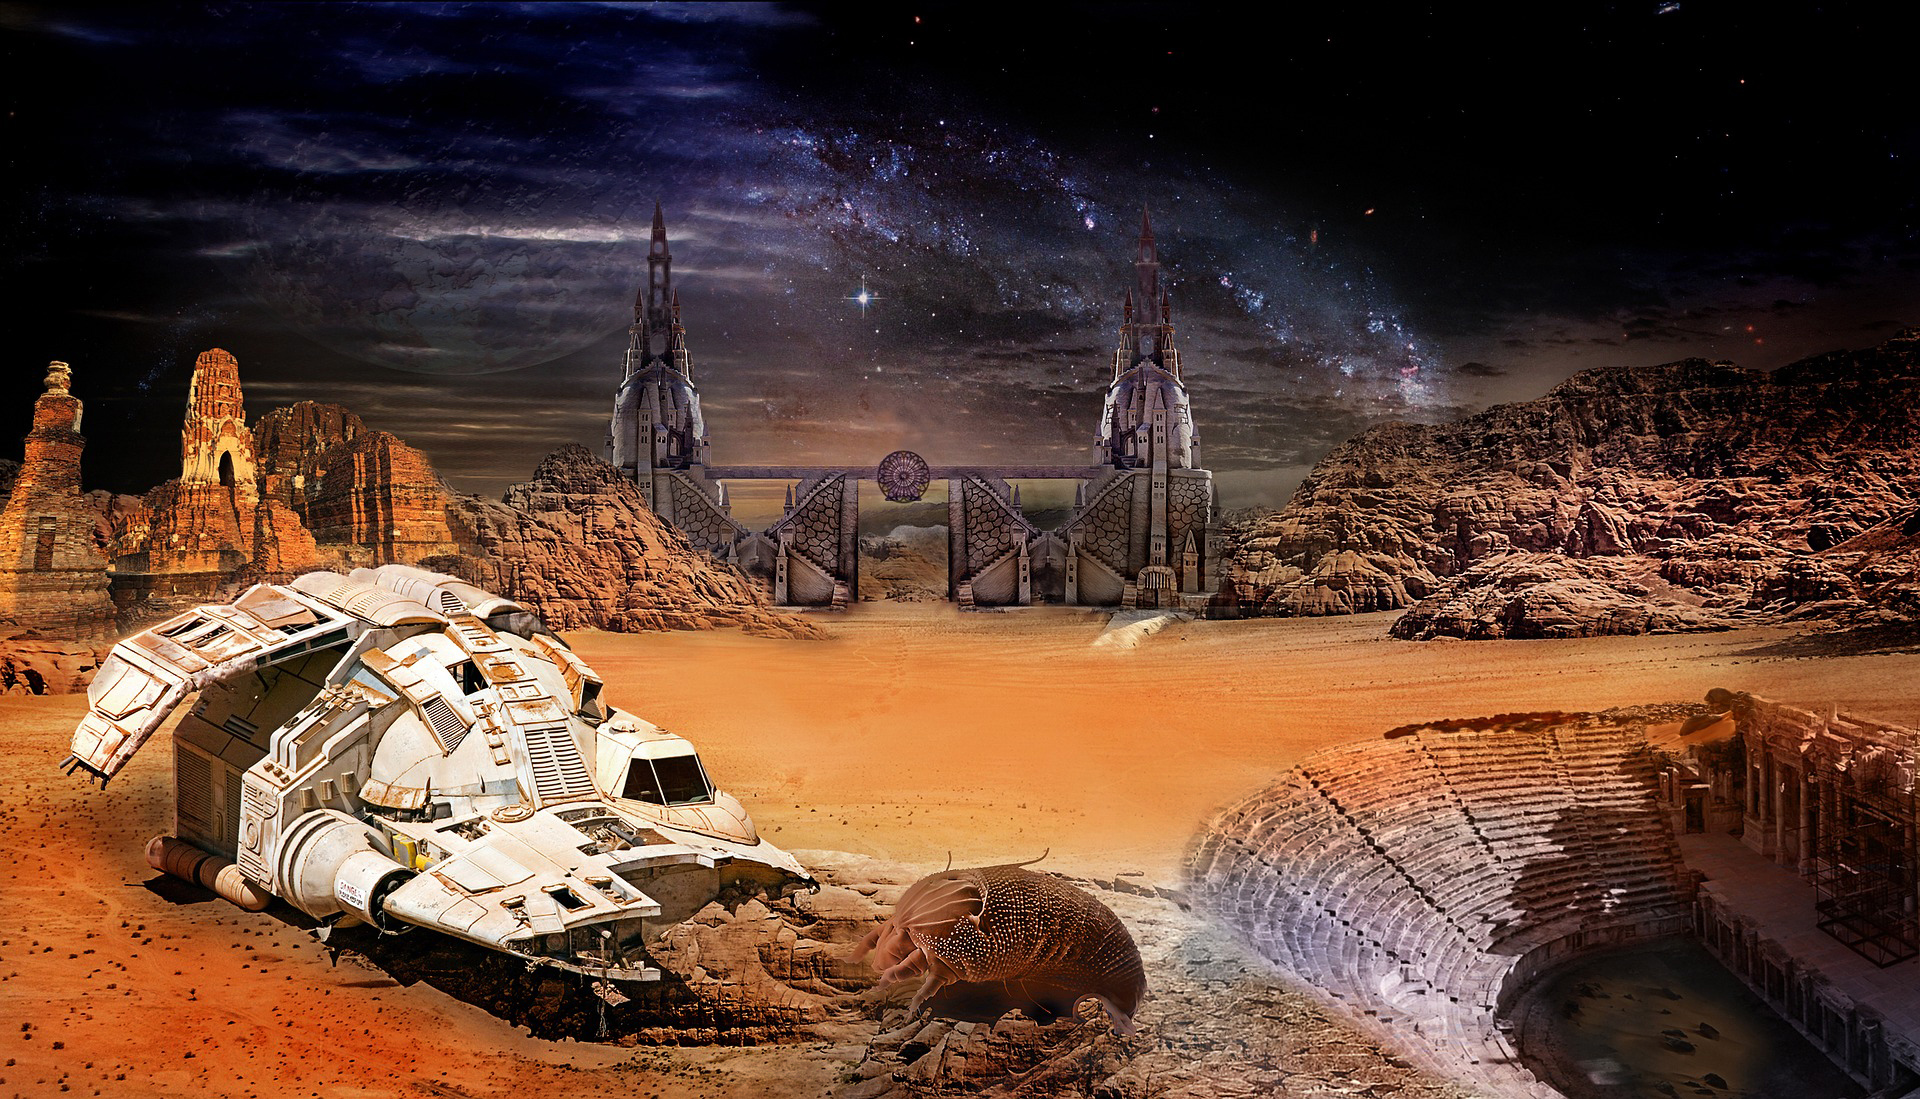 a space station on a planet or moon – not on earth